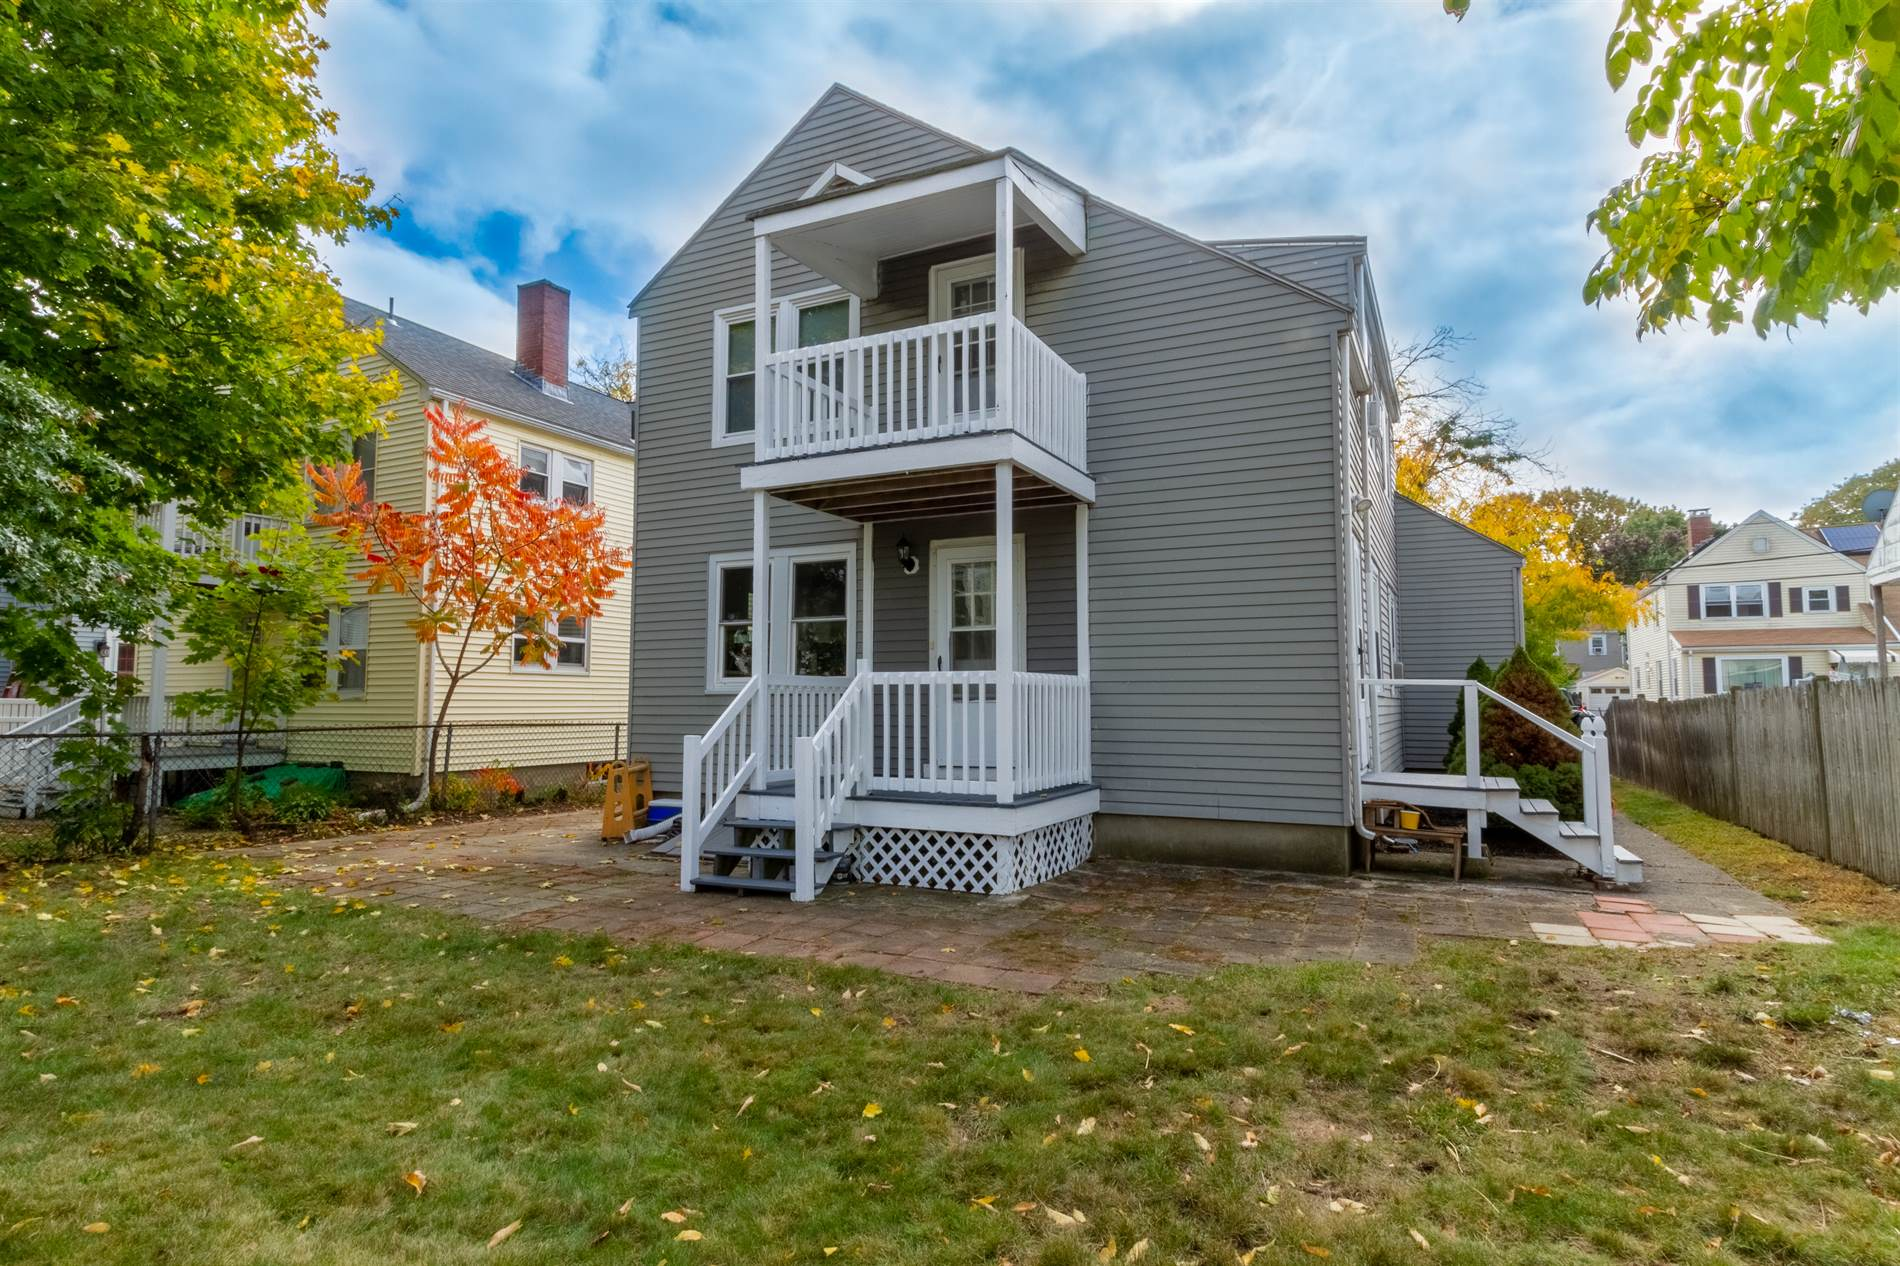 78-80 Lawn Ave, Quincy, MA 02169